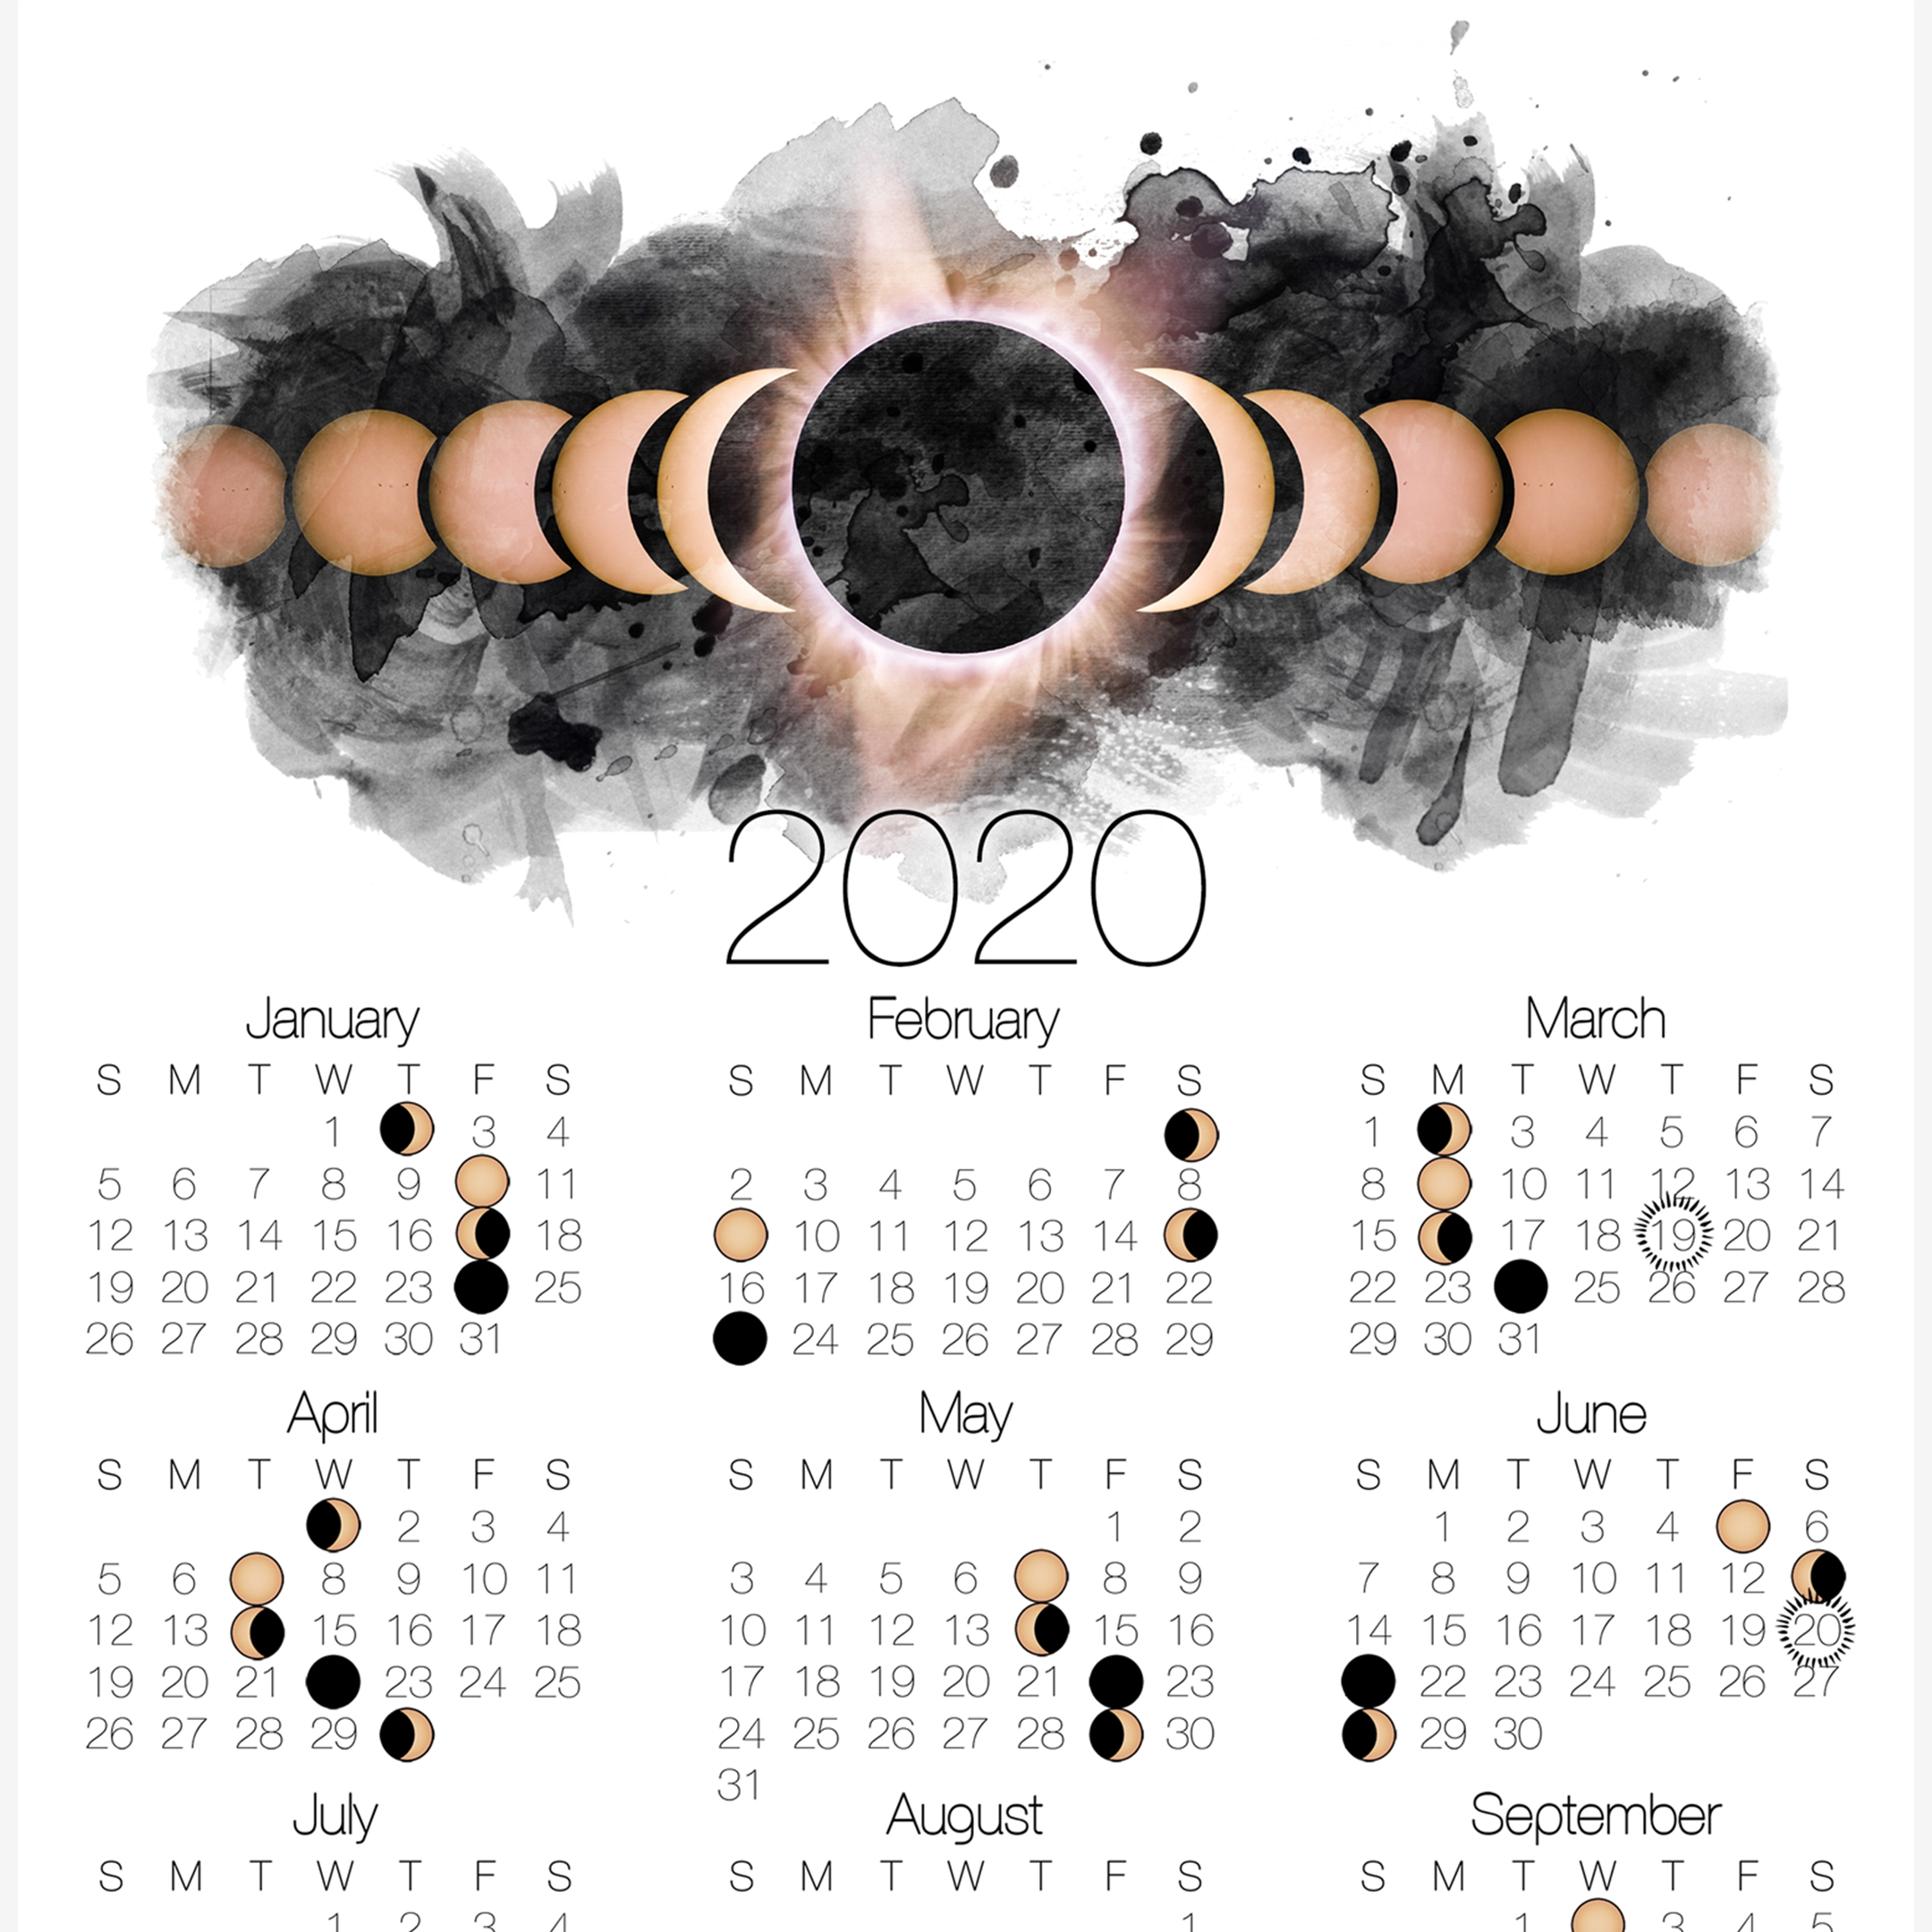 2020 Moon Phase Calendar With Solar Eclipse In 2020 | Moon  2020 Solar Calendar Vs Lunar Calendar